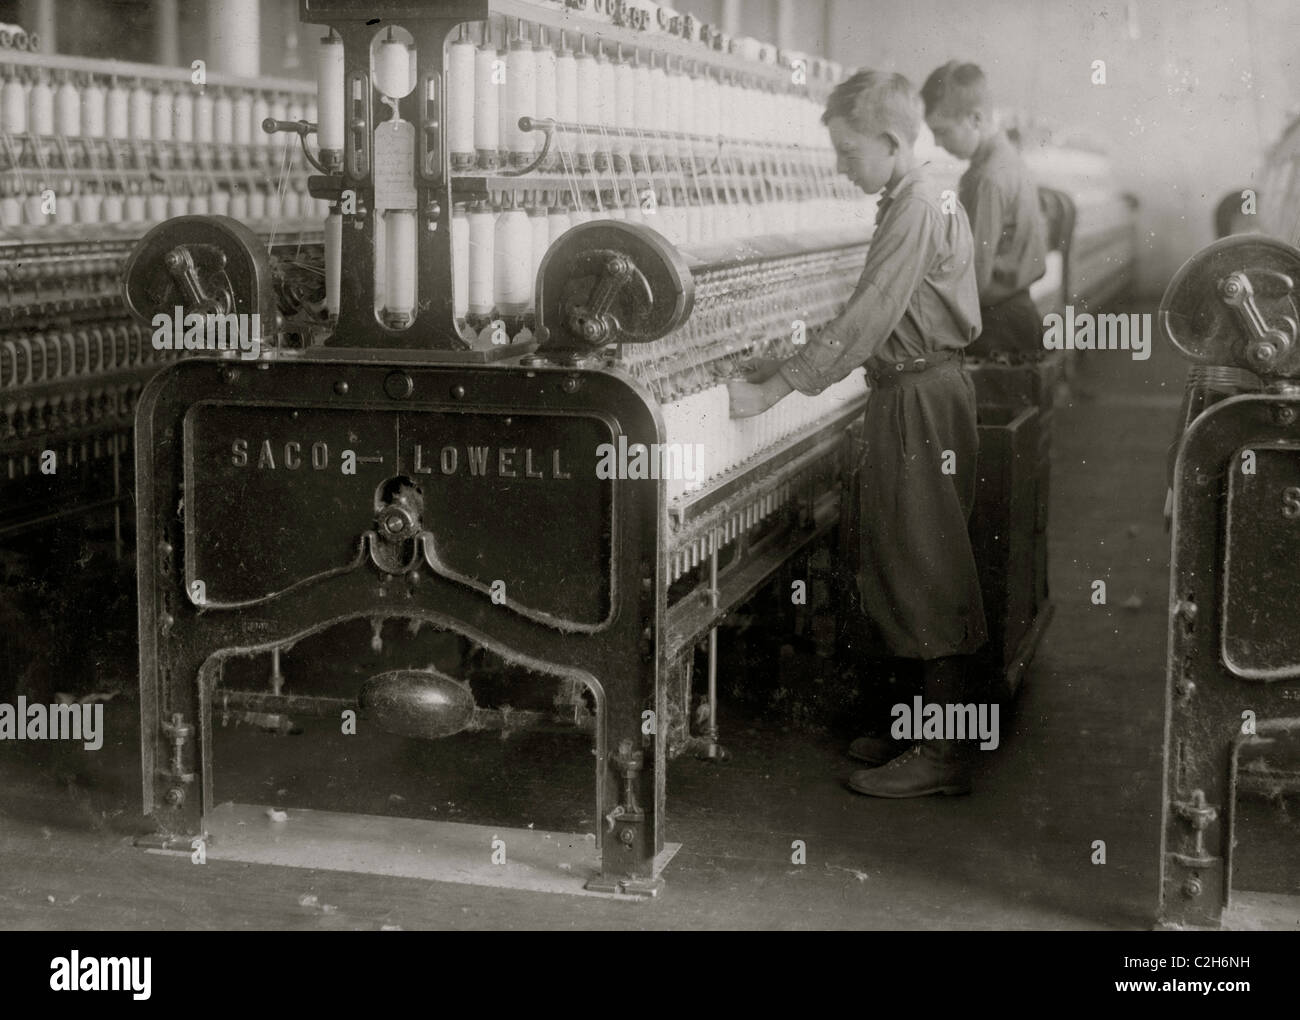 Doffers - Boss said 14 and 15 years old  Indian Orchard Cotton Mill